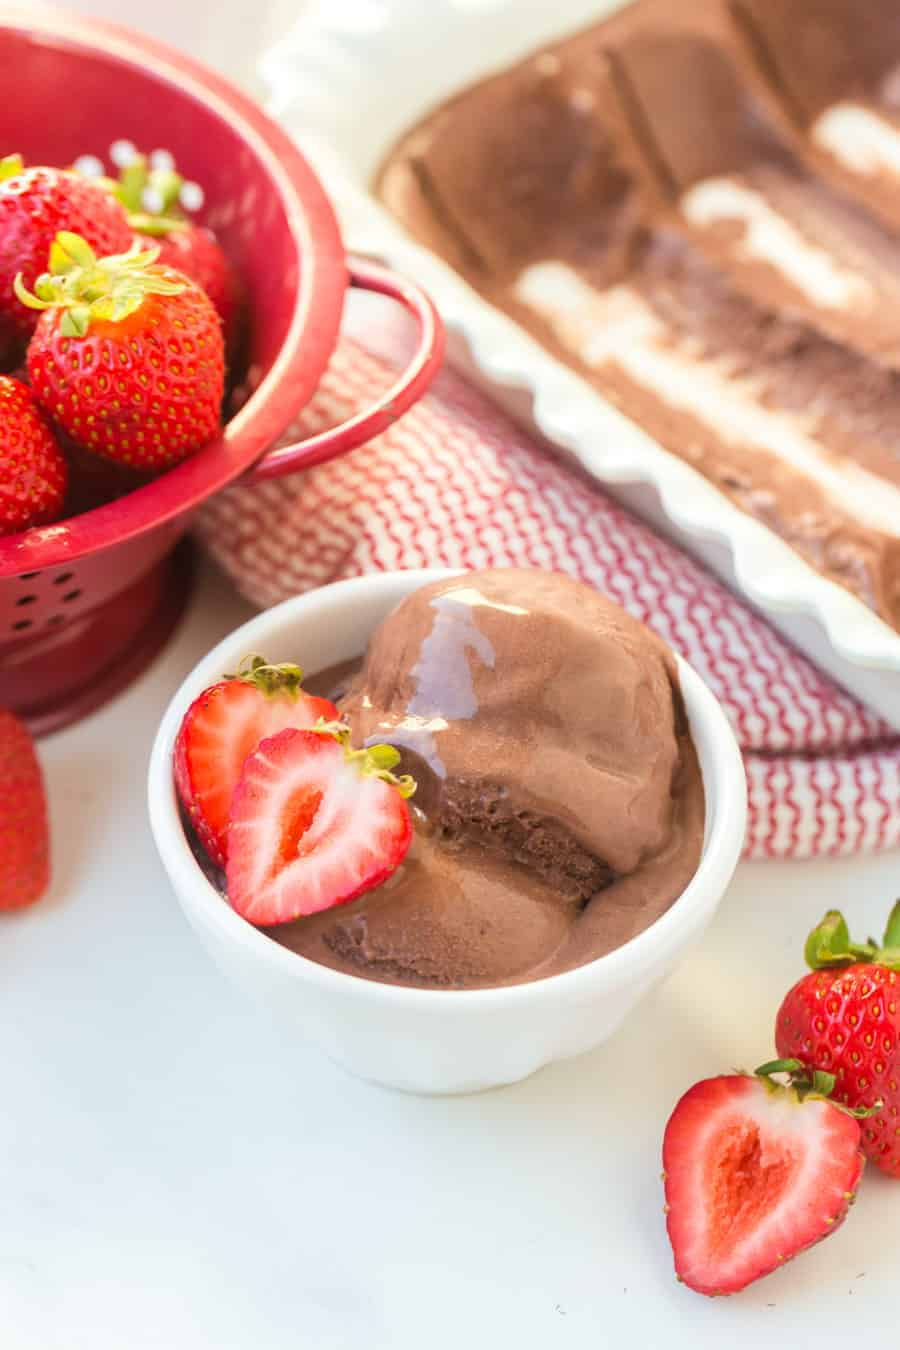 This homemade dark chocolate ice cream is so creamy and luxurious that you'll never go back to the store-bought kind! #icecream #chocolateicecream #icecreamrecipe #homemadeicecream #darkchocolate